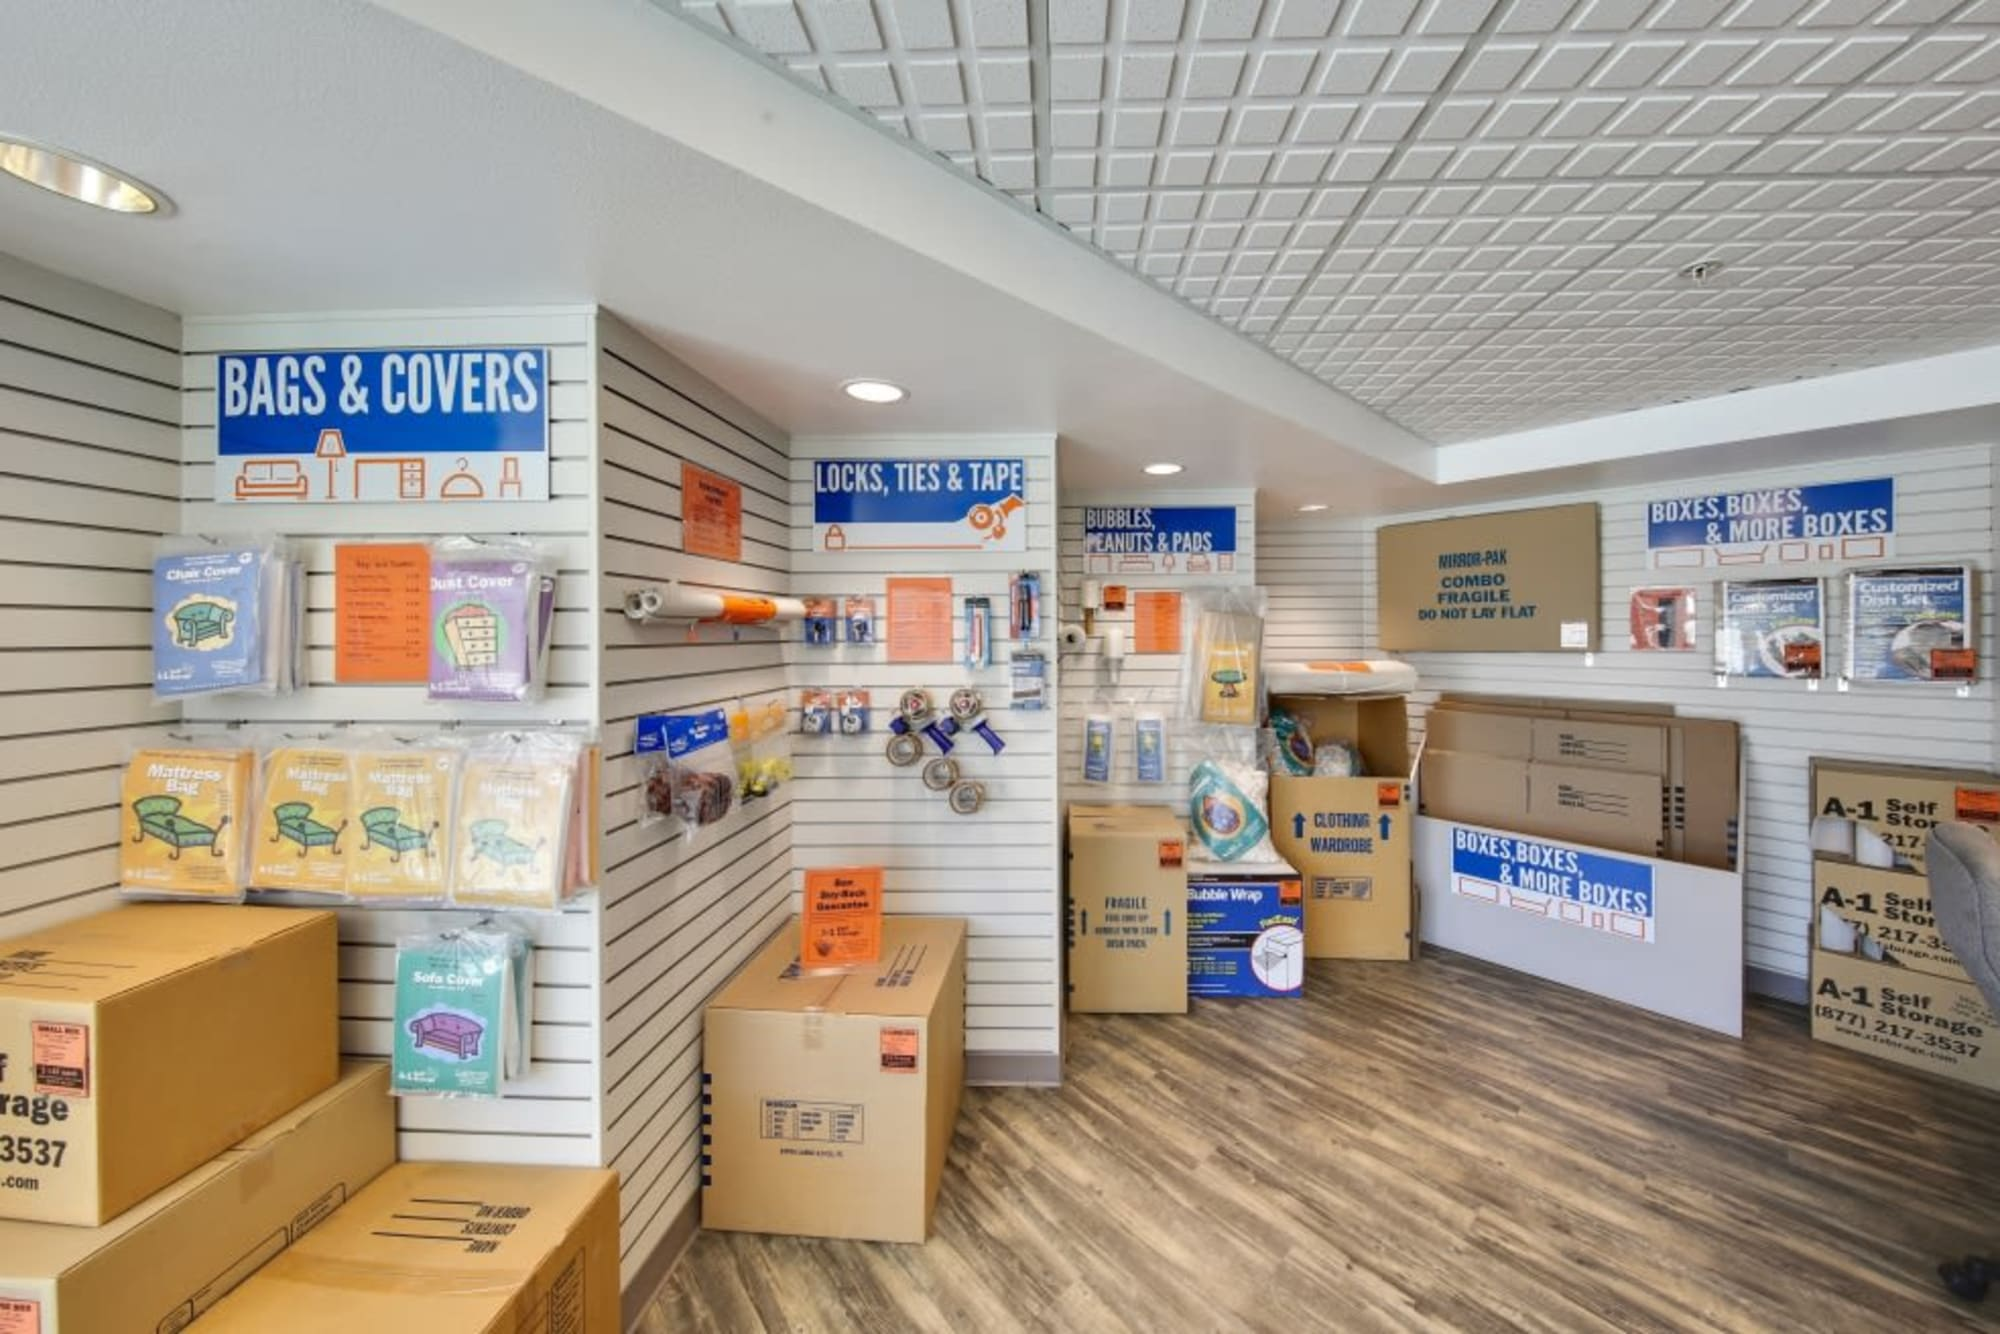 Moving supplies available at A-1 Self Storage in El Cajon, California